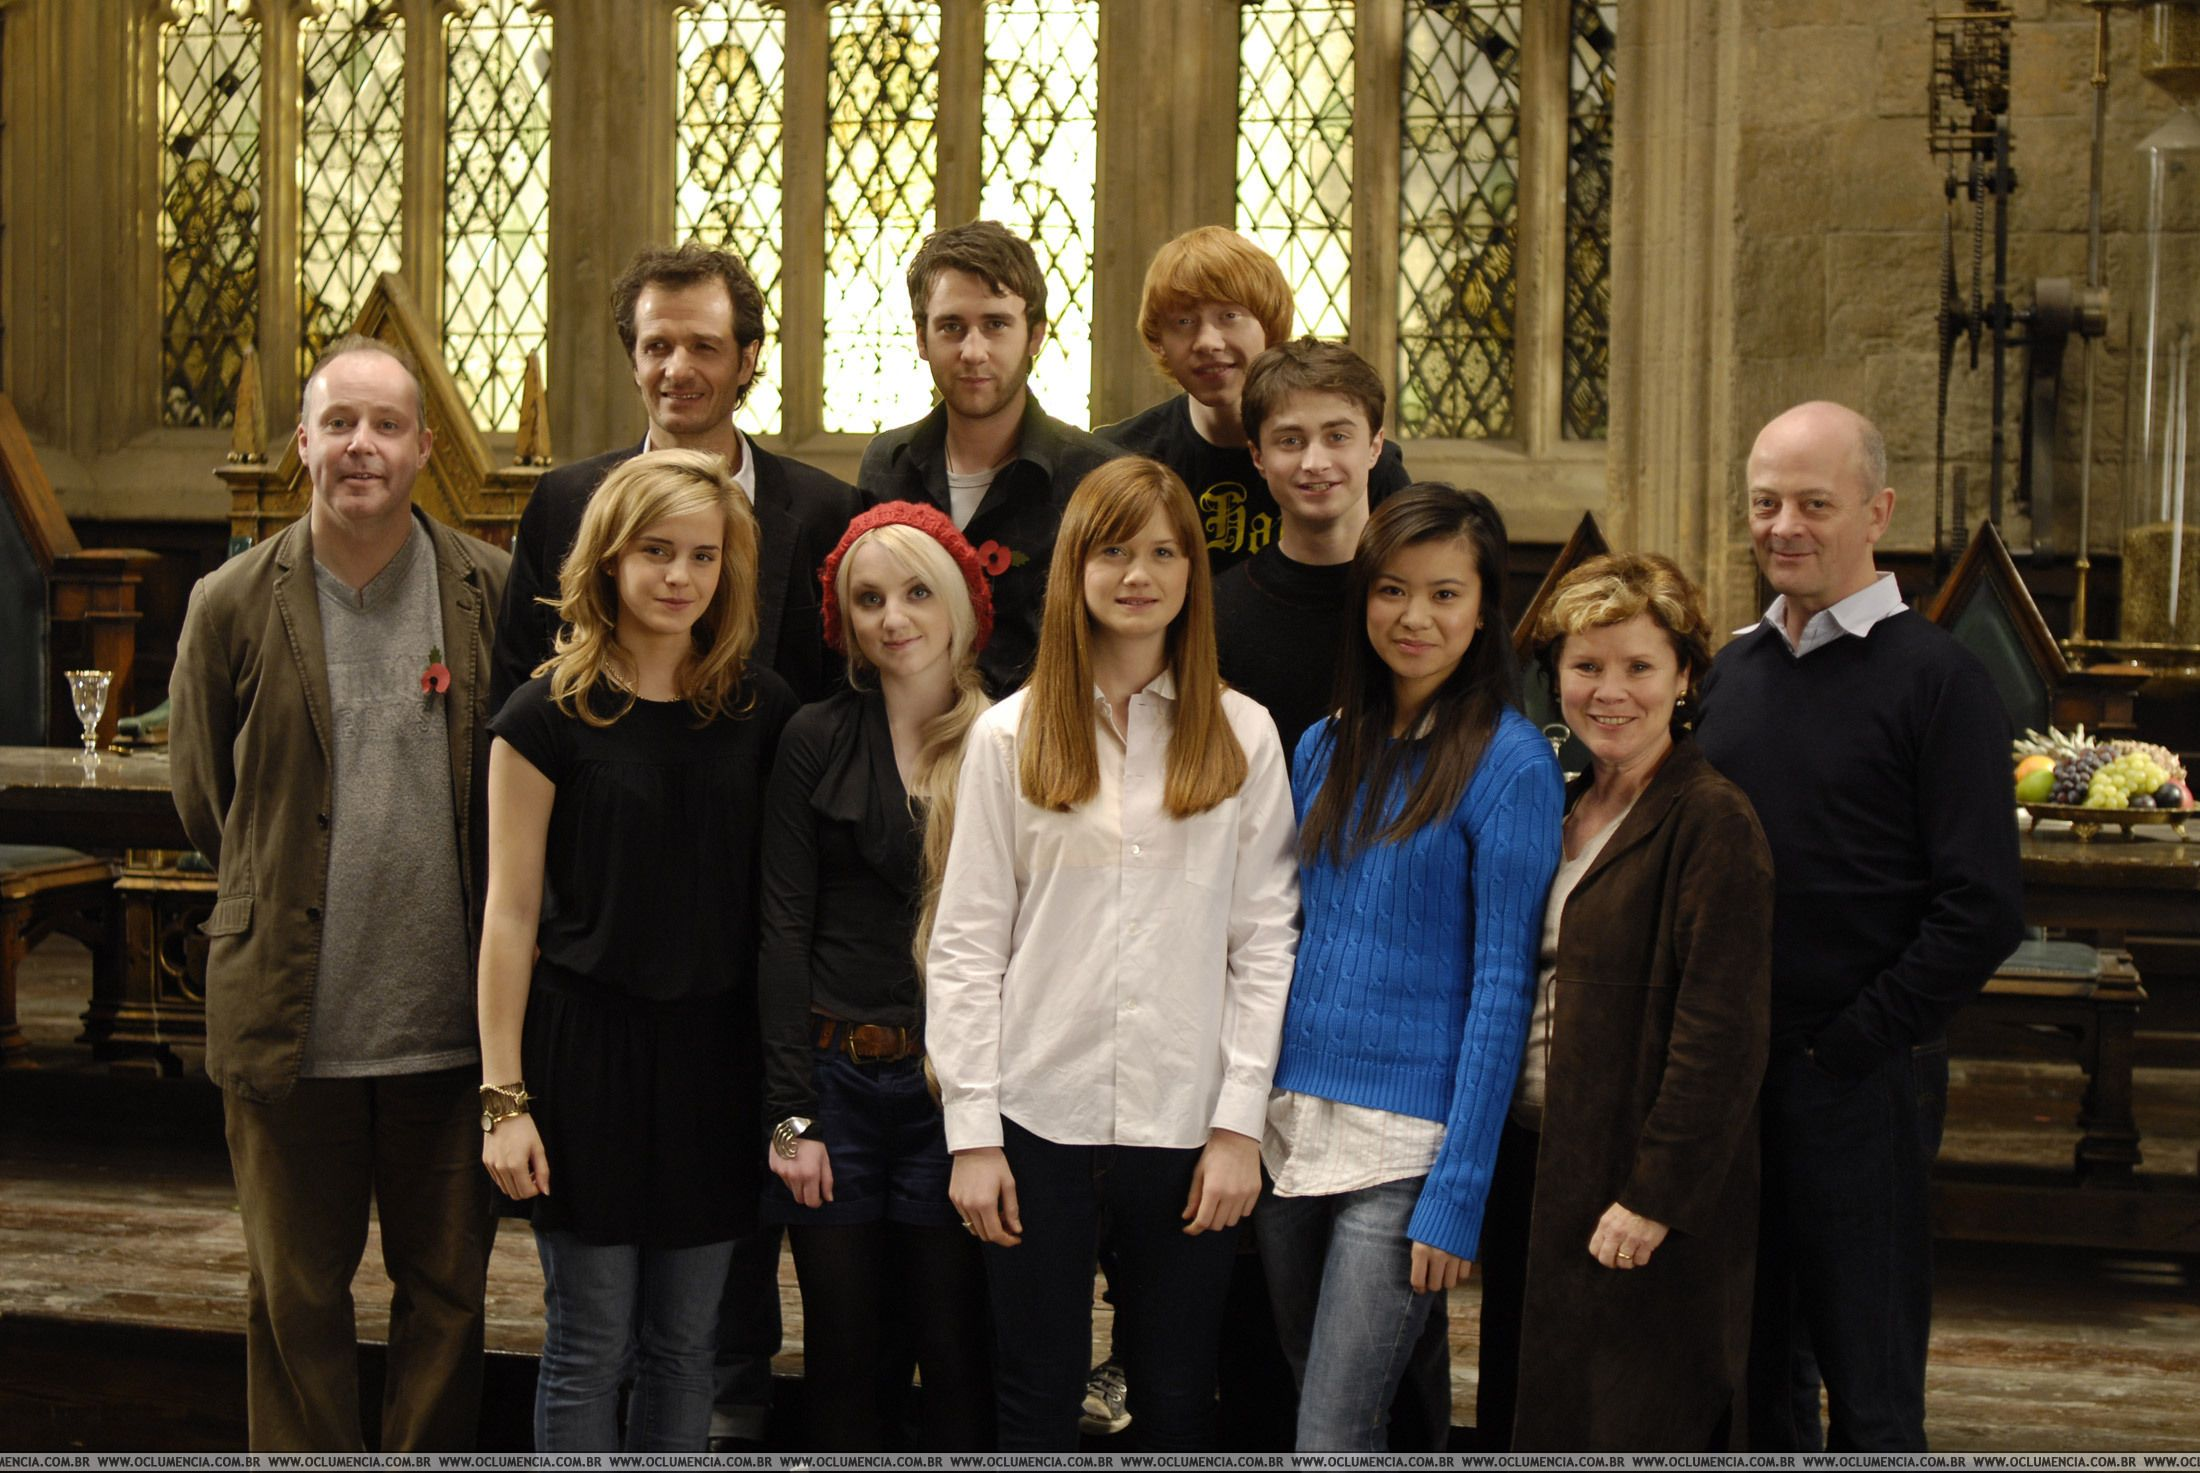 Pin By Aaron Cunningham On Harry Potter Harry Potter Cast Harry Potter Hermione Harry Potter Movies